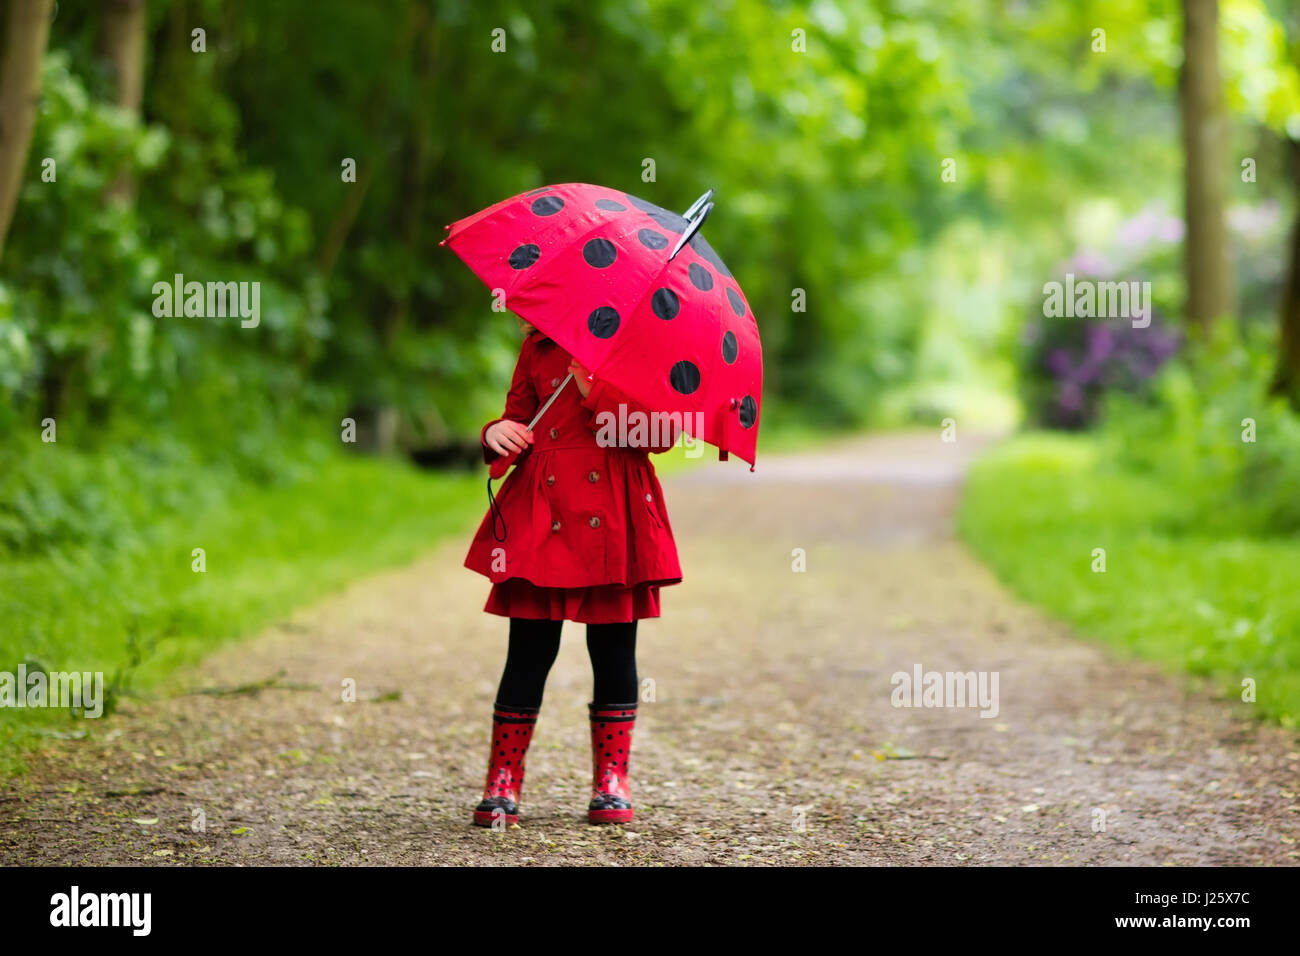 little playing in rainy summer park child with red ladybug